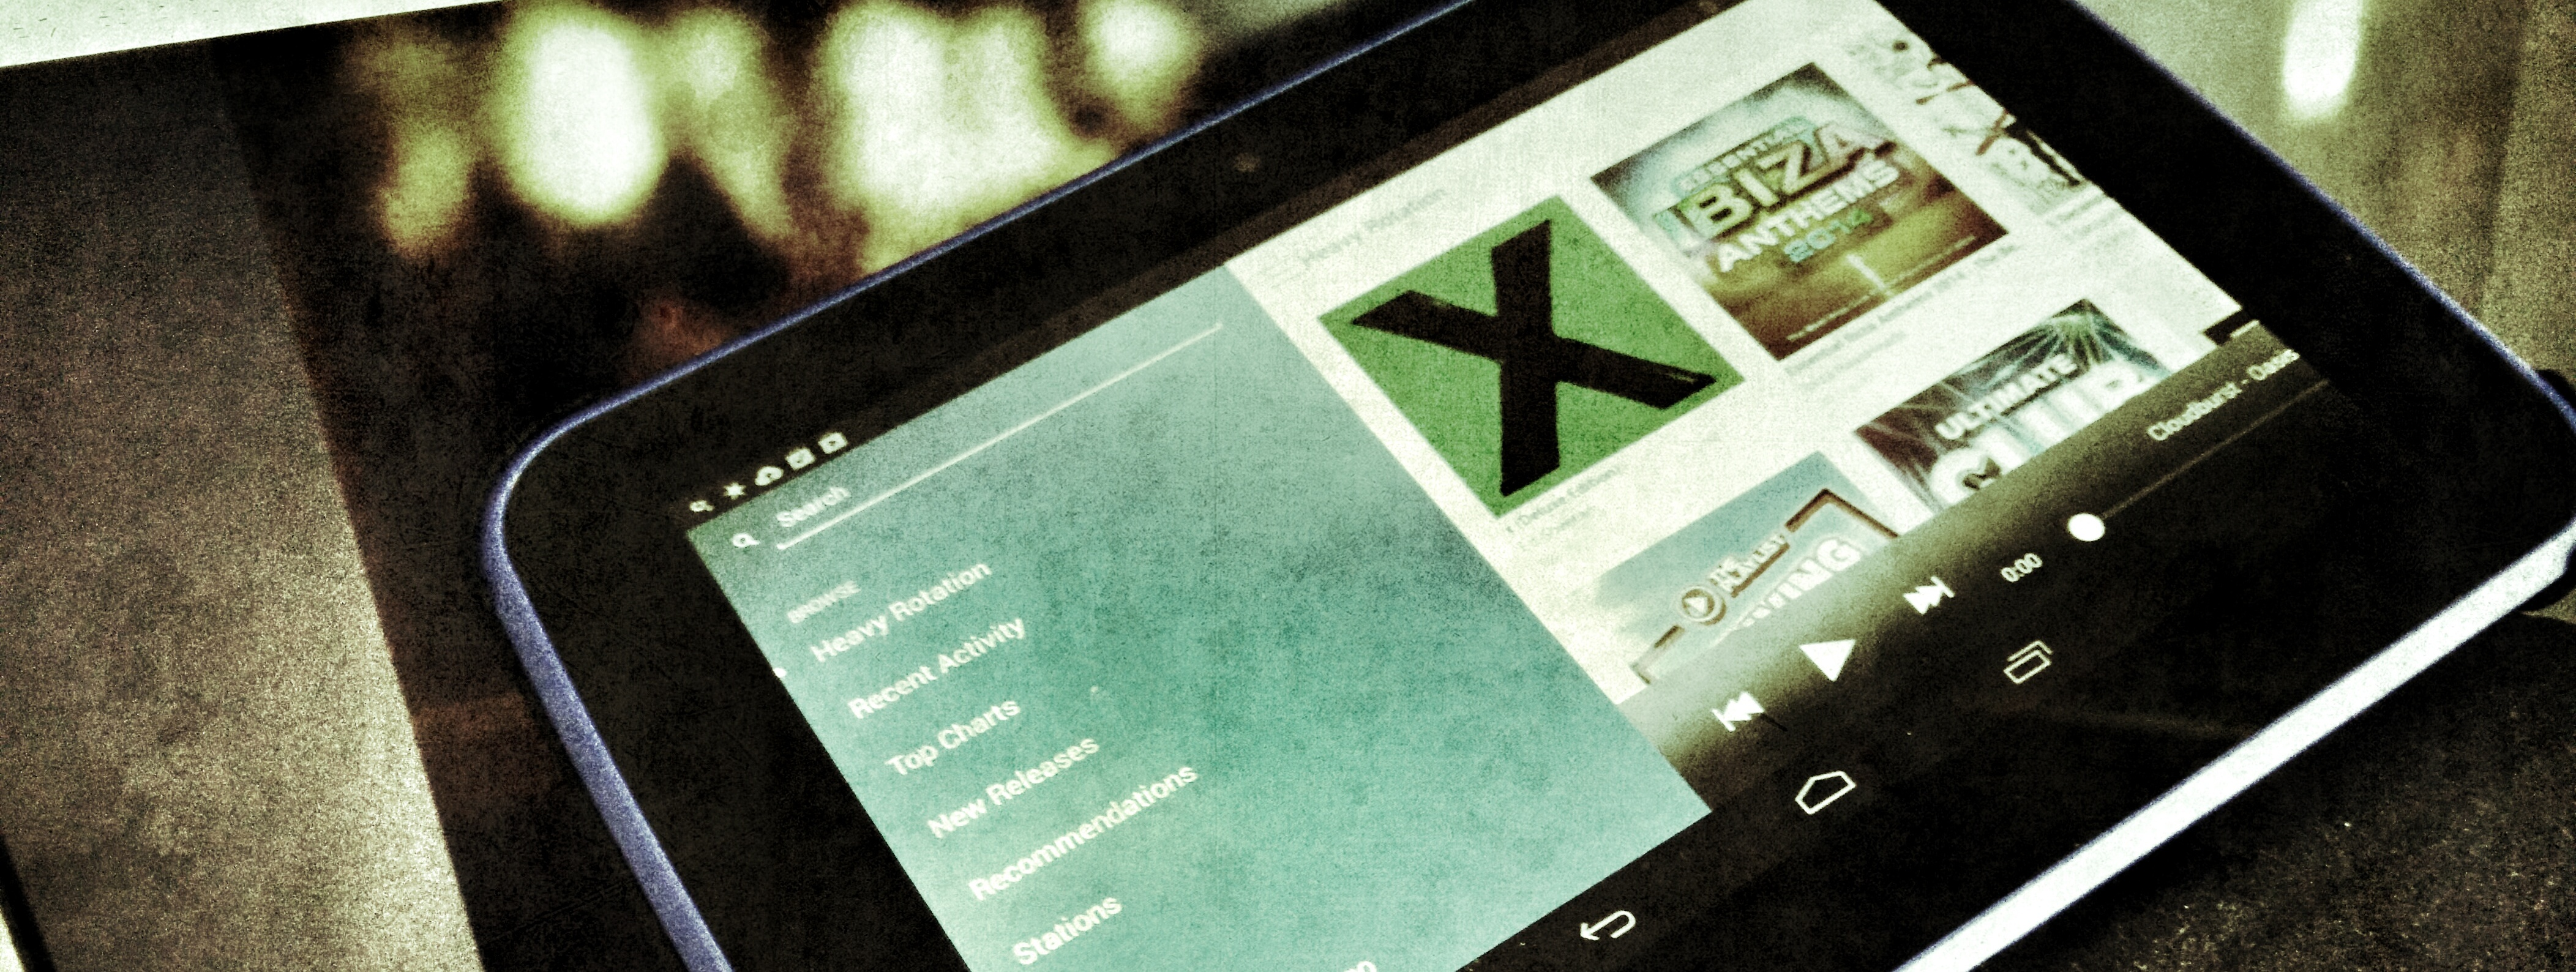 11 On-Demand Music Streaming Services Compared